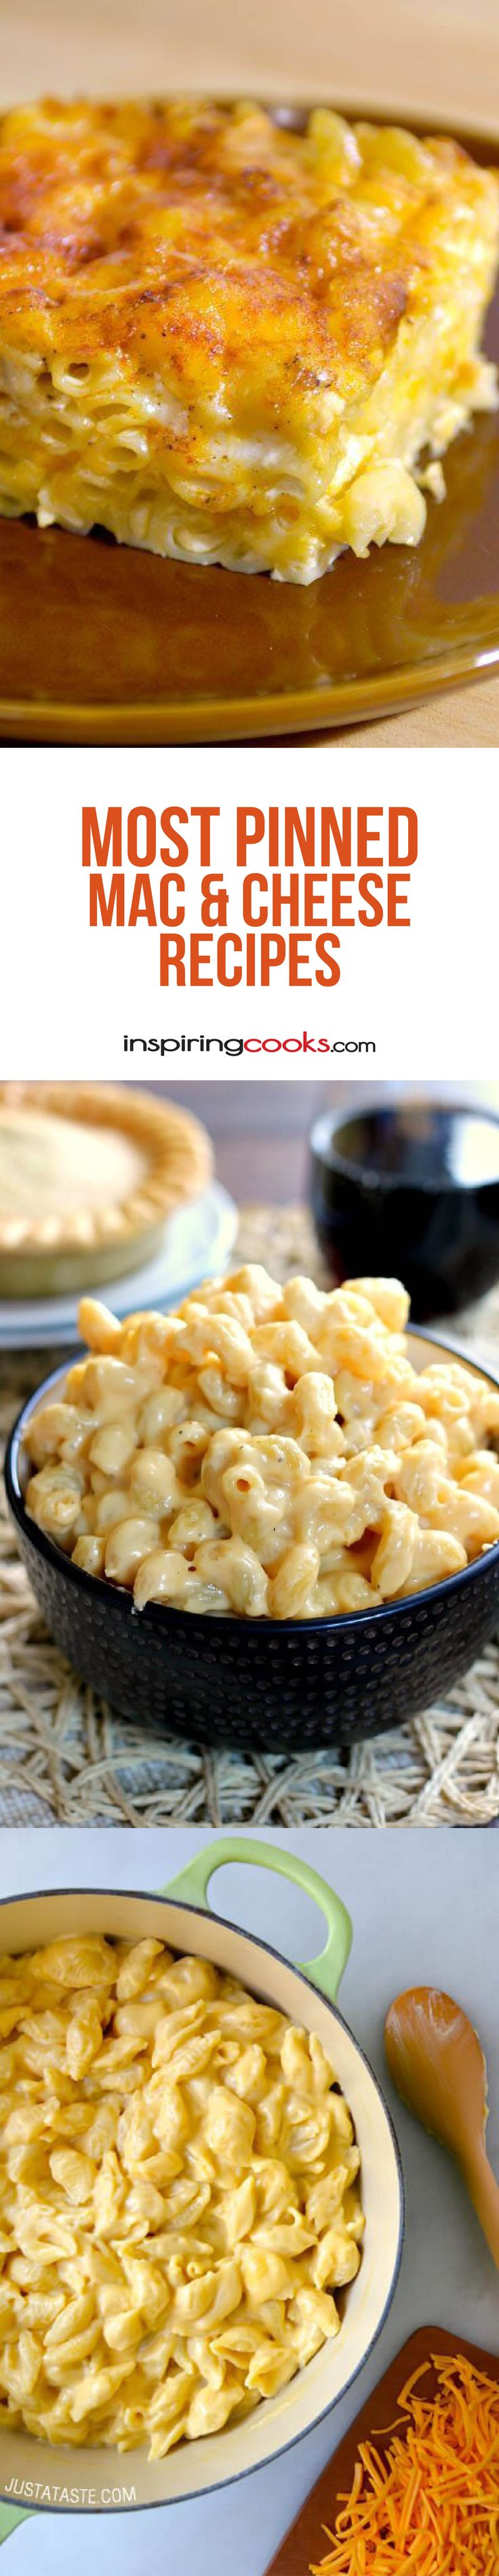 Here is a list of the most pinned macaroni & cheese recipes on Pinterest. I didn't know there were so many different macaroni & cheese recipes, but I found the 18 best ones though. How do I know they are the best mac and cheeses recipes? Because they have been pinned on Pinterest more times...Read More